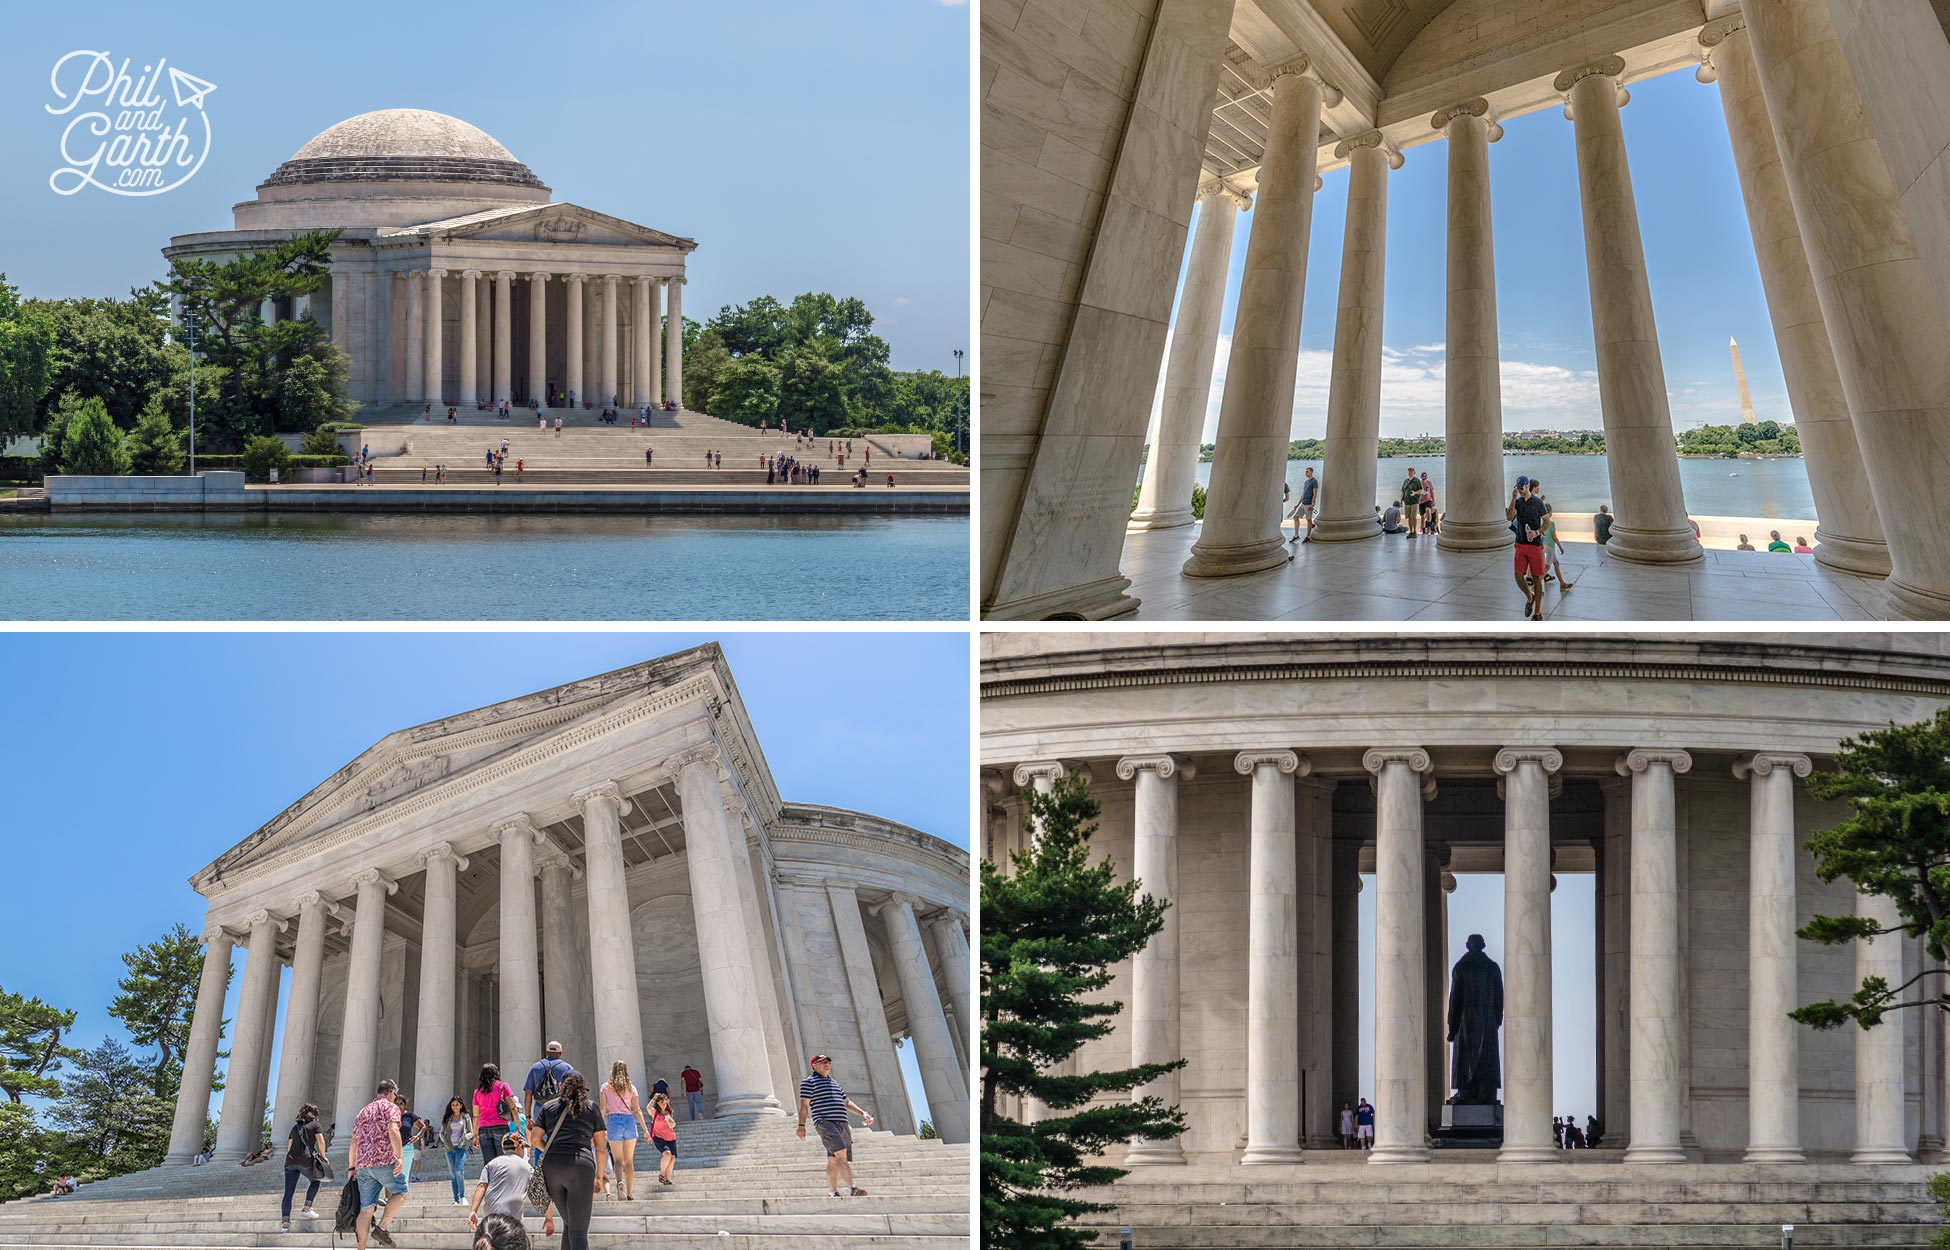 Honouring America's third president, Thomas Jefferson. This memorial is designed in the neoclassical style